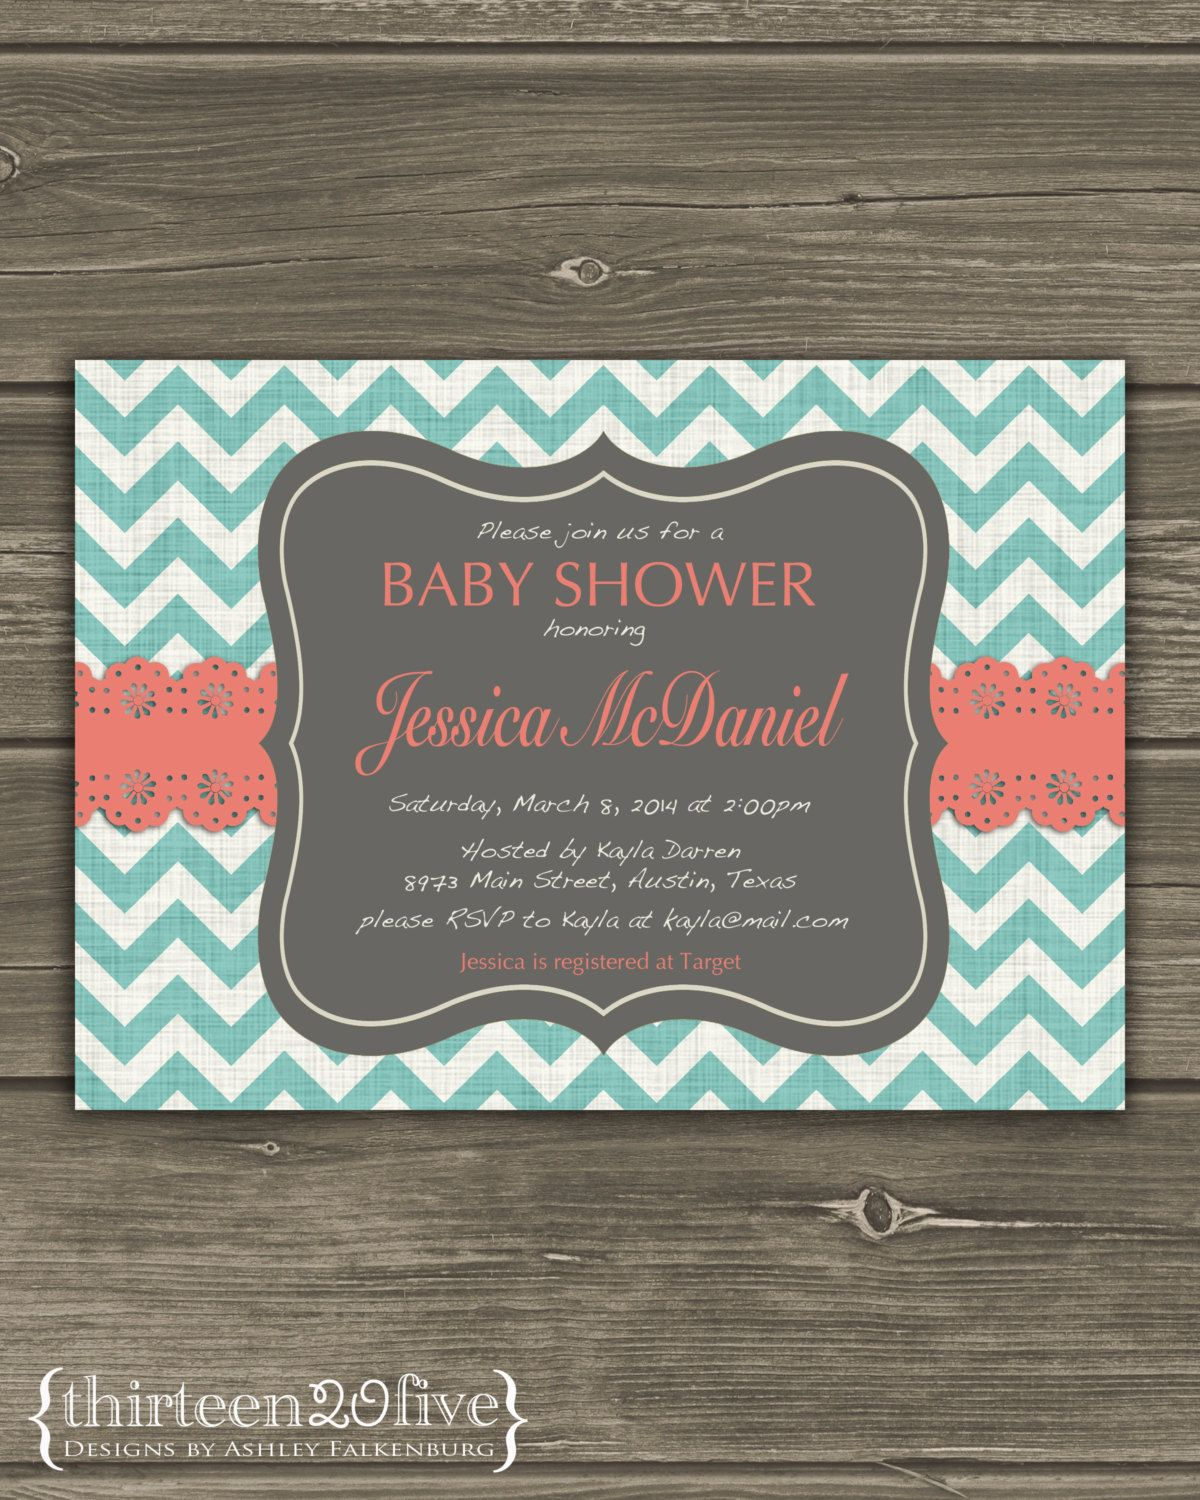 unique homemade baby shower invitation ideas%0A Items similar to Teal Chevron Baby Shower Invitation Coral Lace Custom DIY  on Etsy